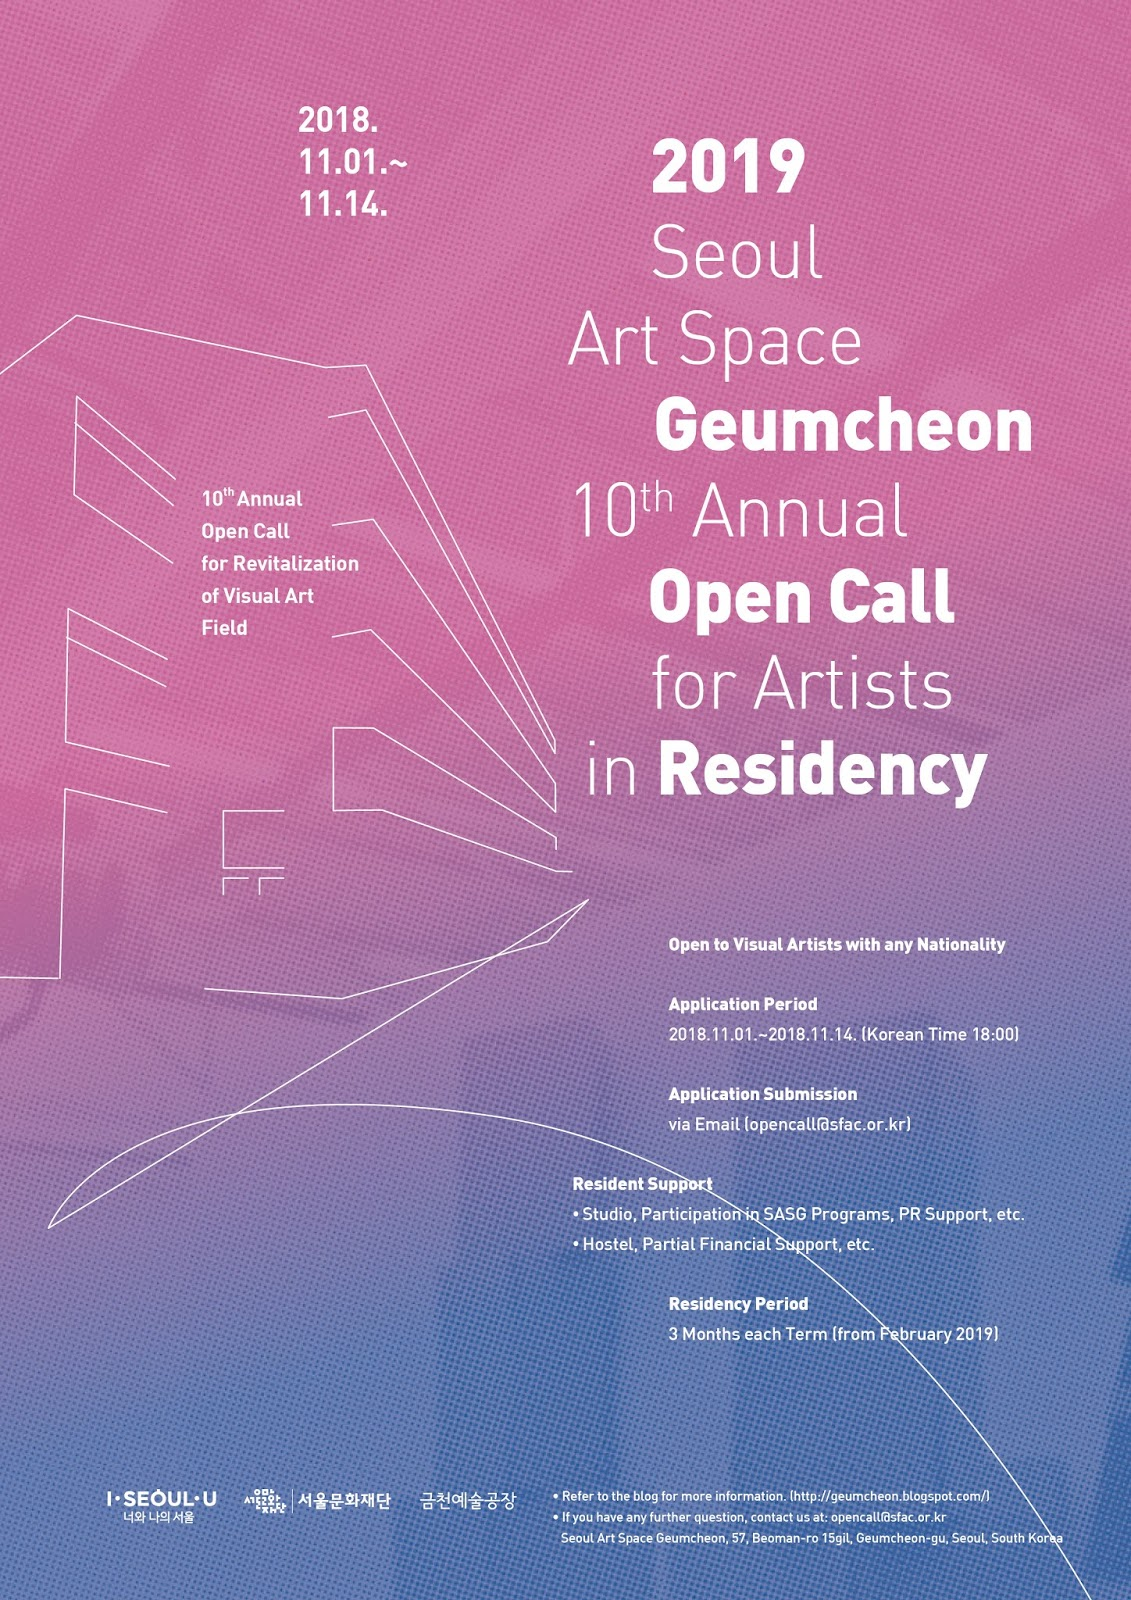 Seoul Art Space GEUMCHEON 2019 residency call | ASEF culture360